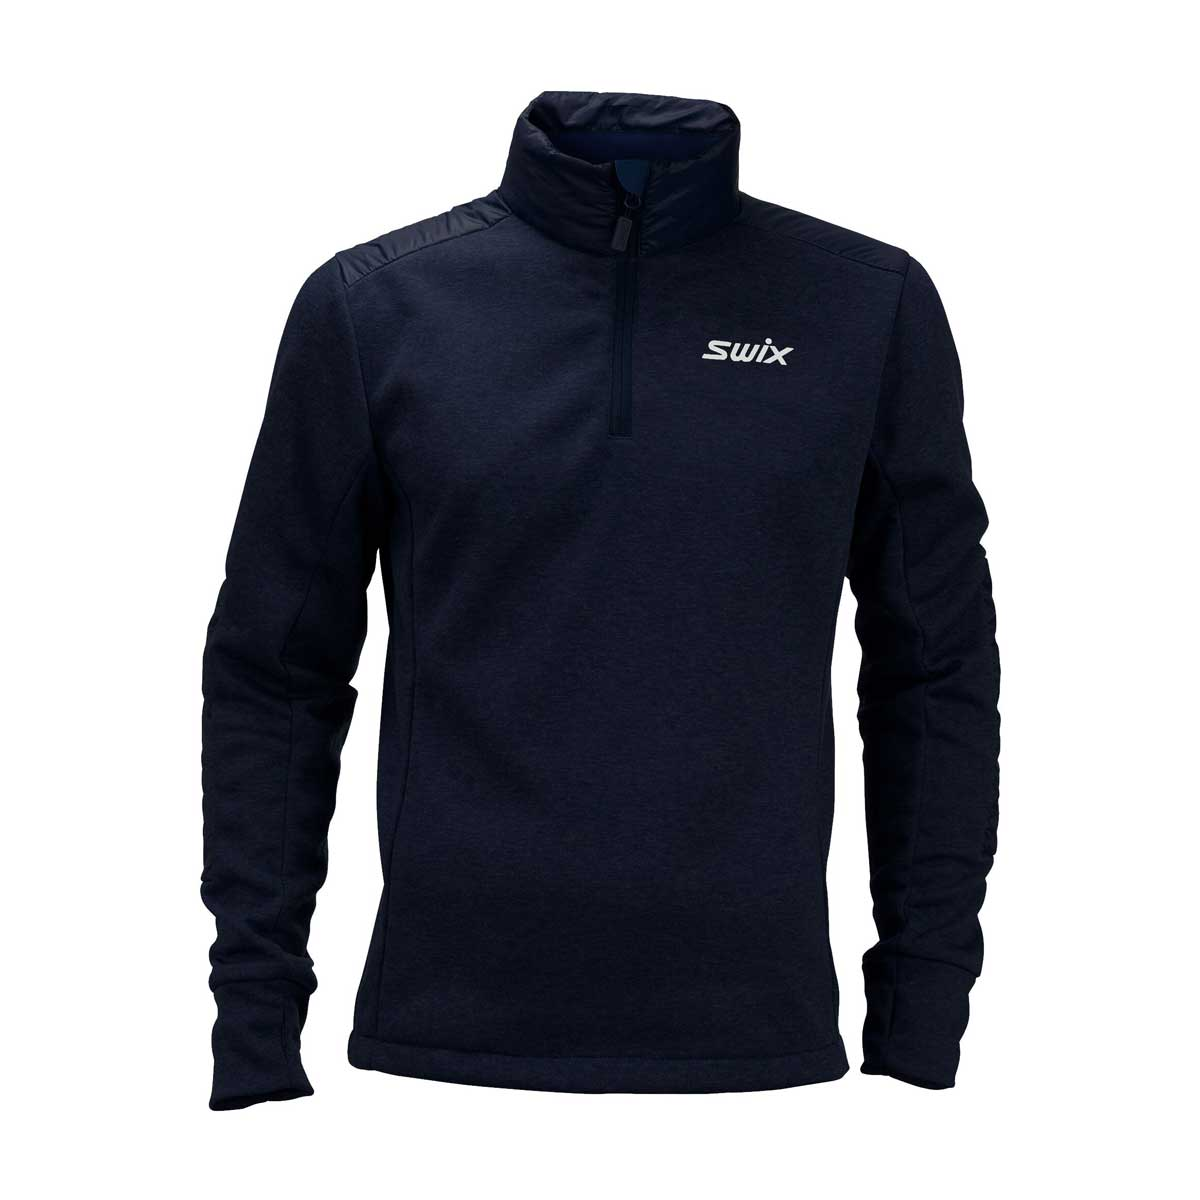 Swix Men's Blizzard 1/2 Zip Top in Dark Navy